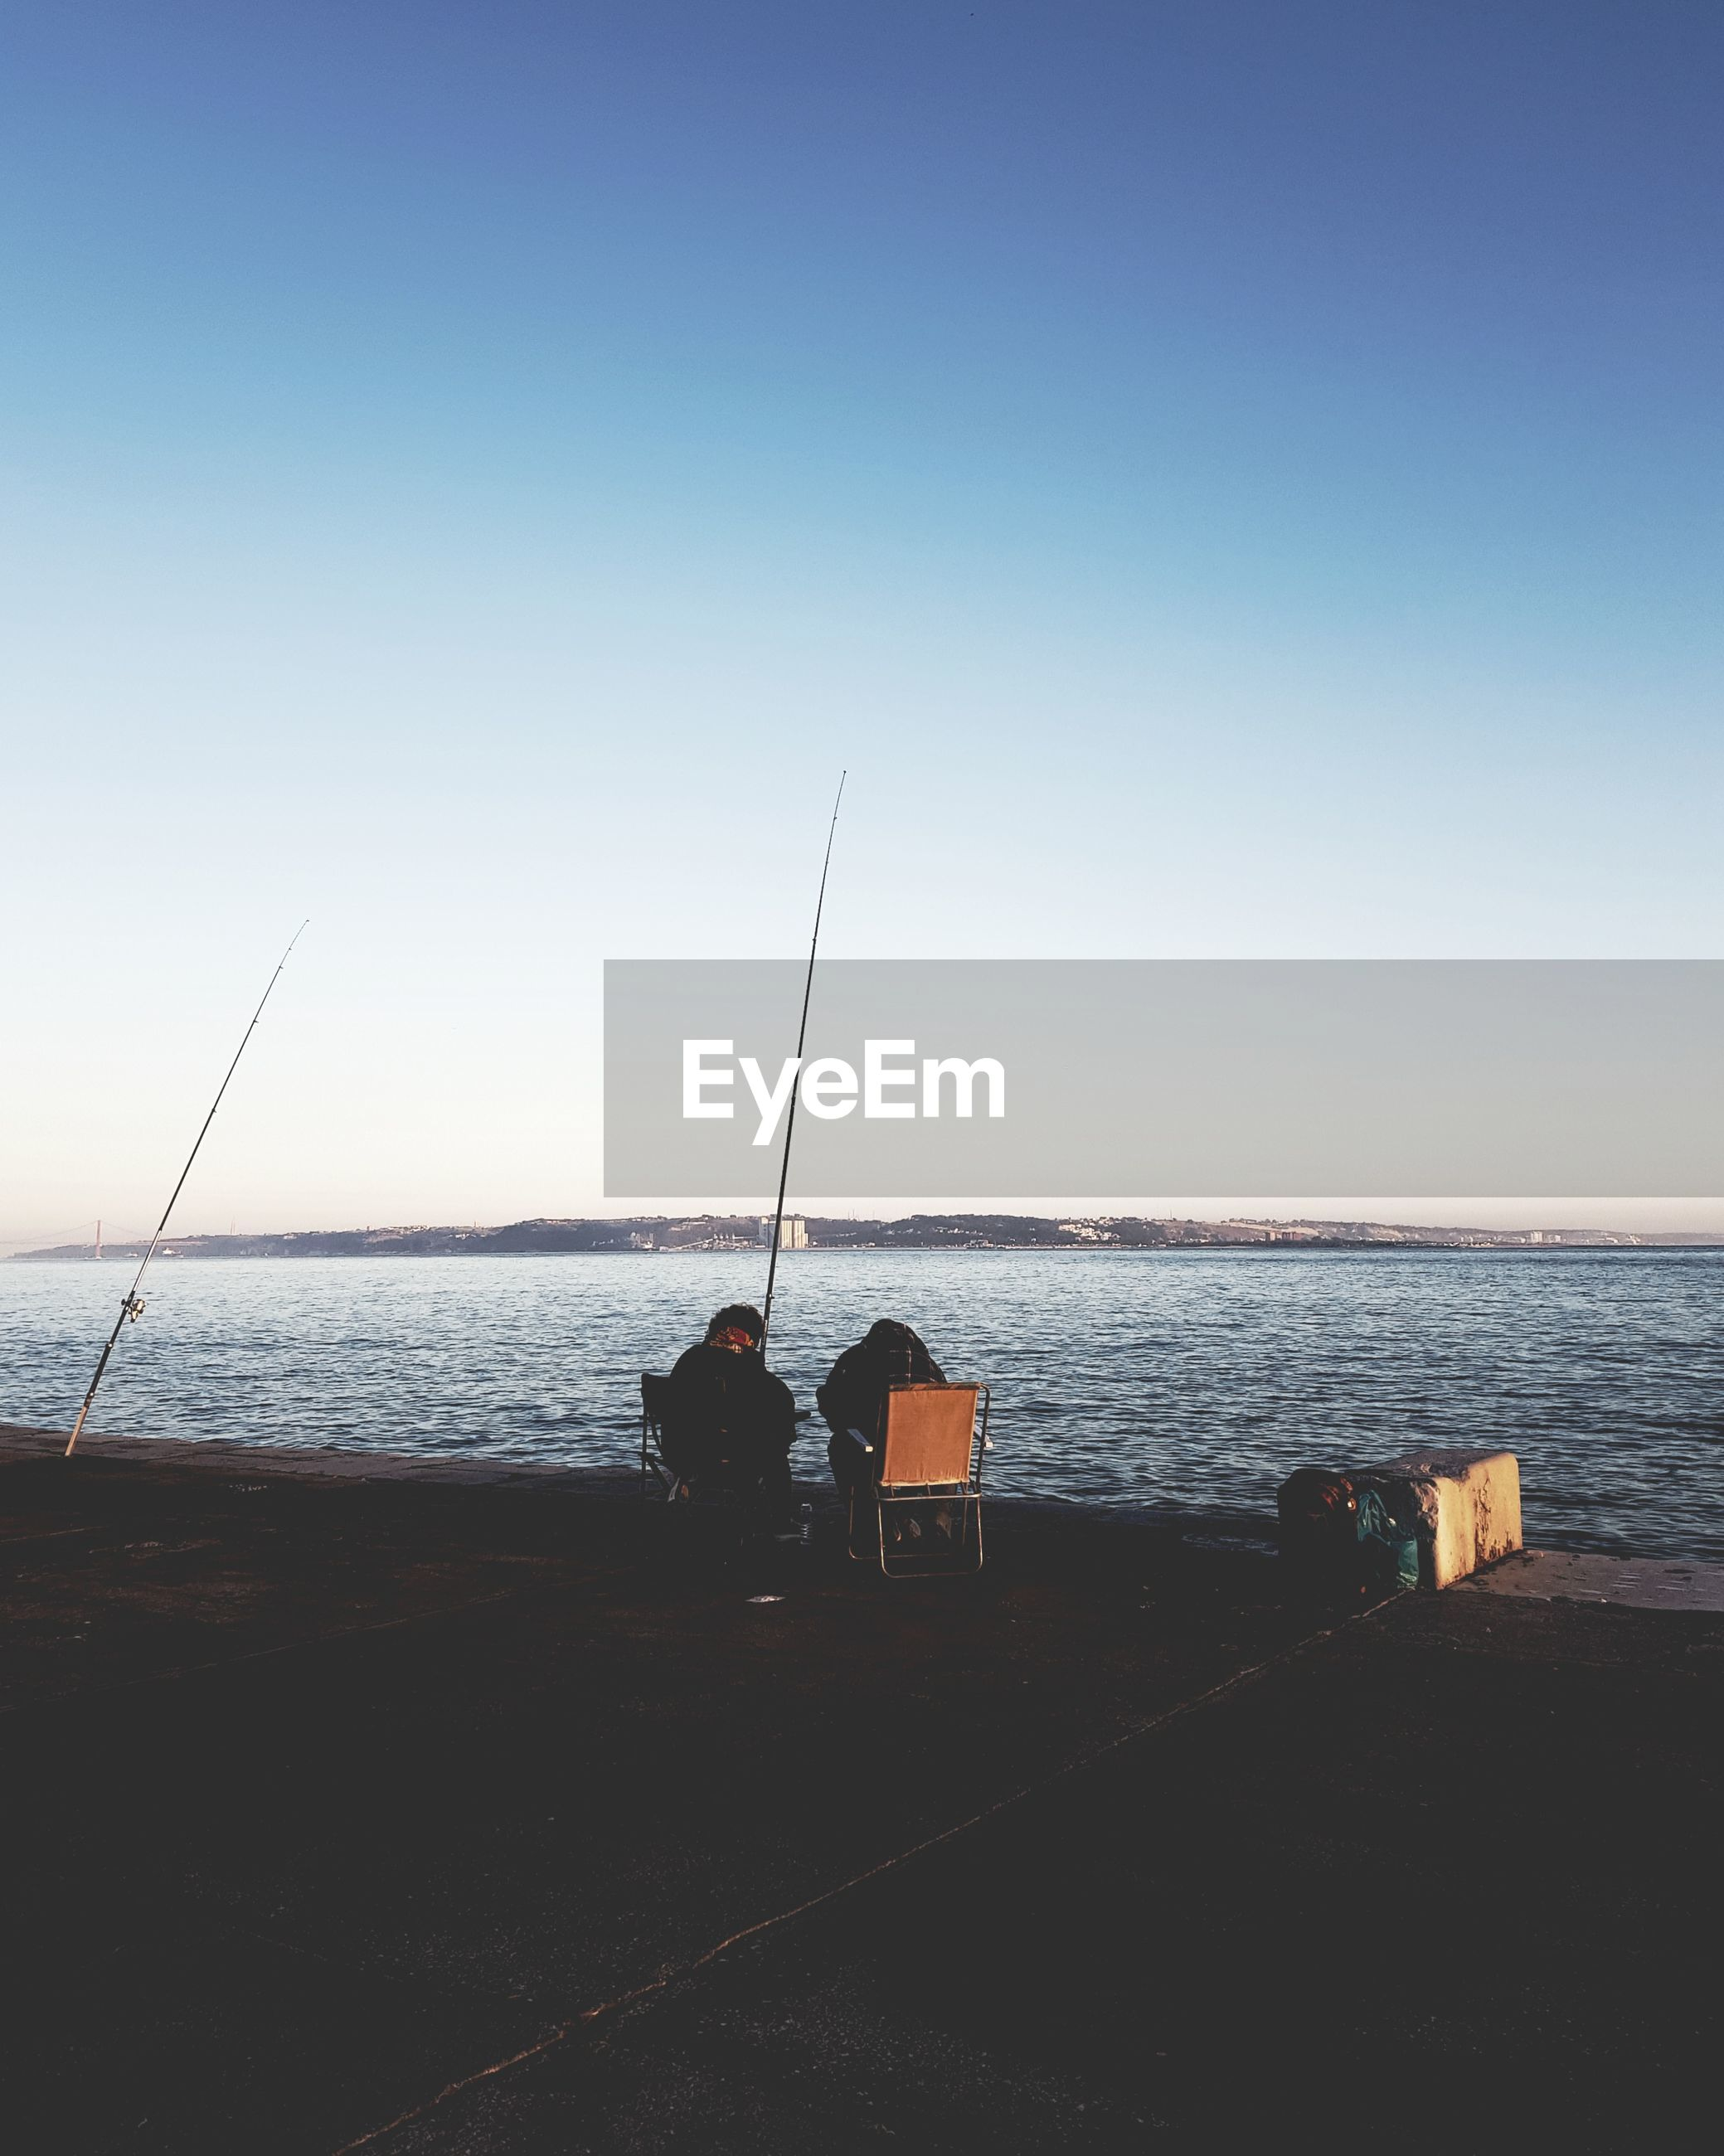 MEN FISHING ON SEA AGAINST CLEAR SKY